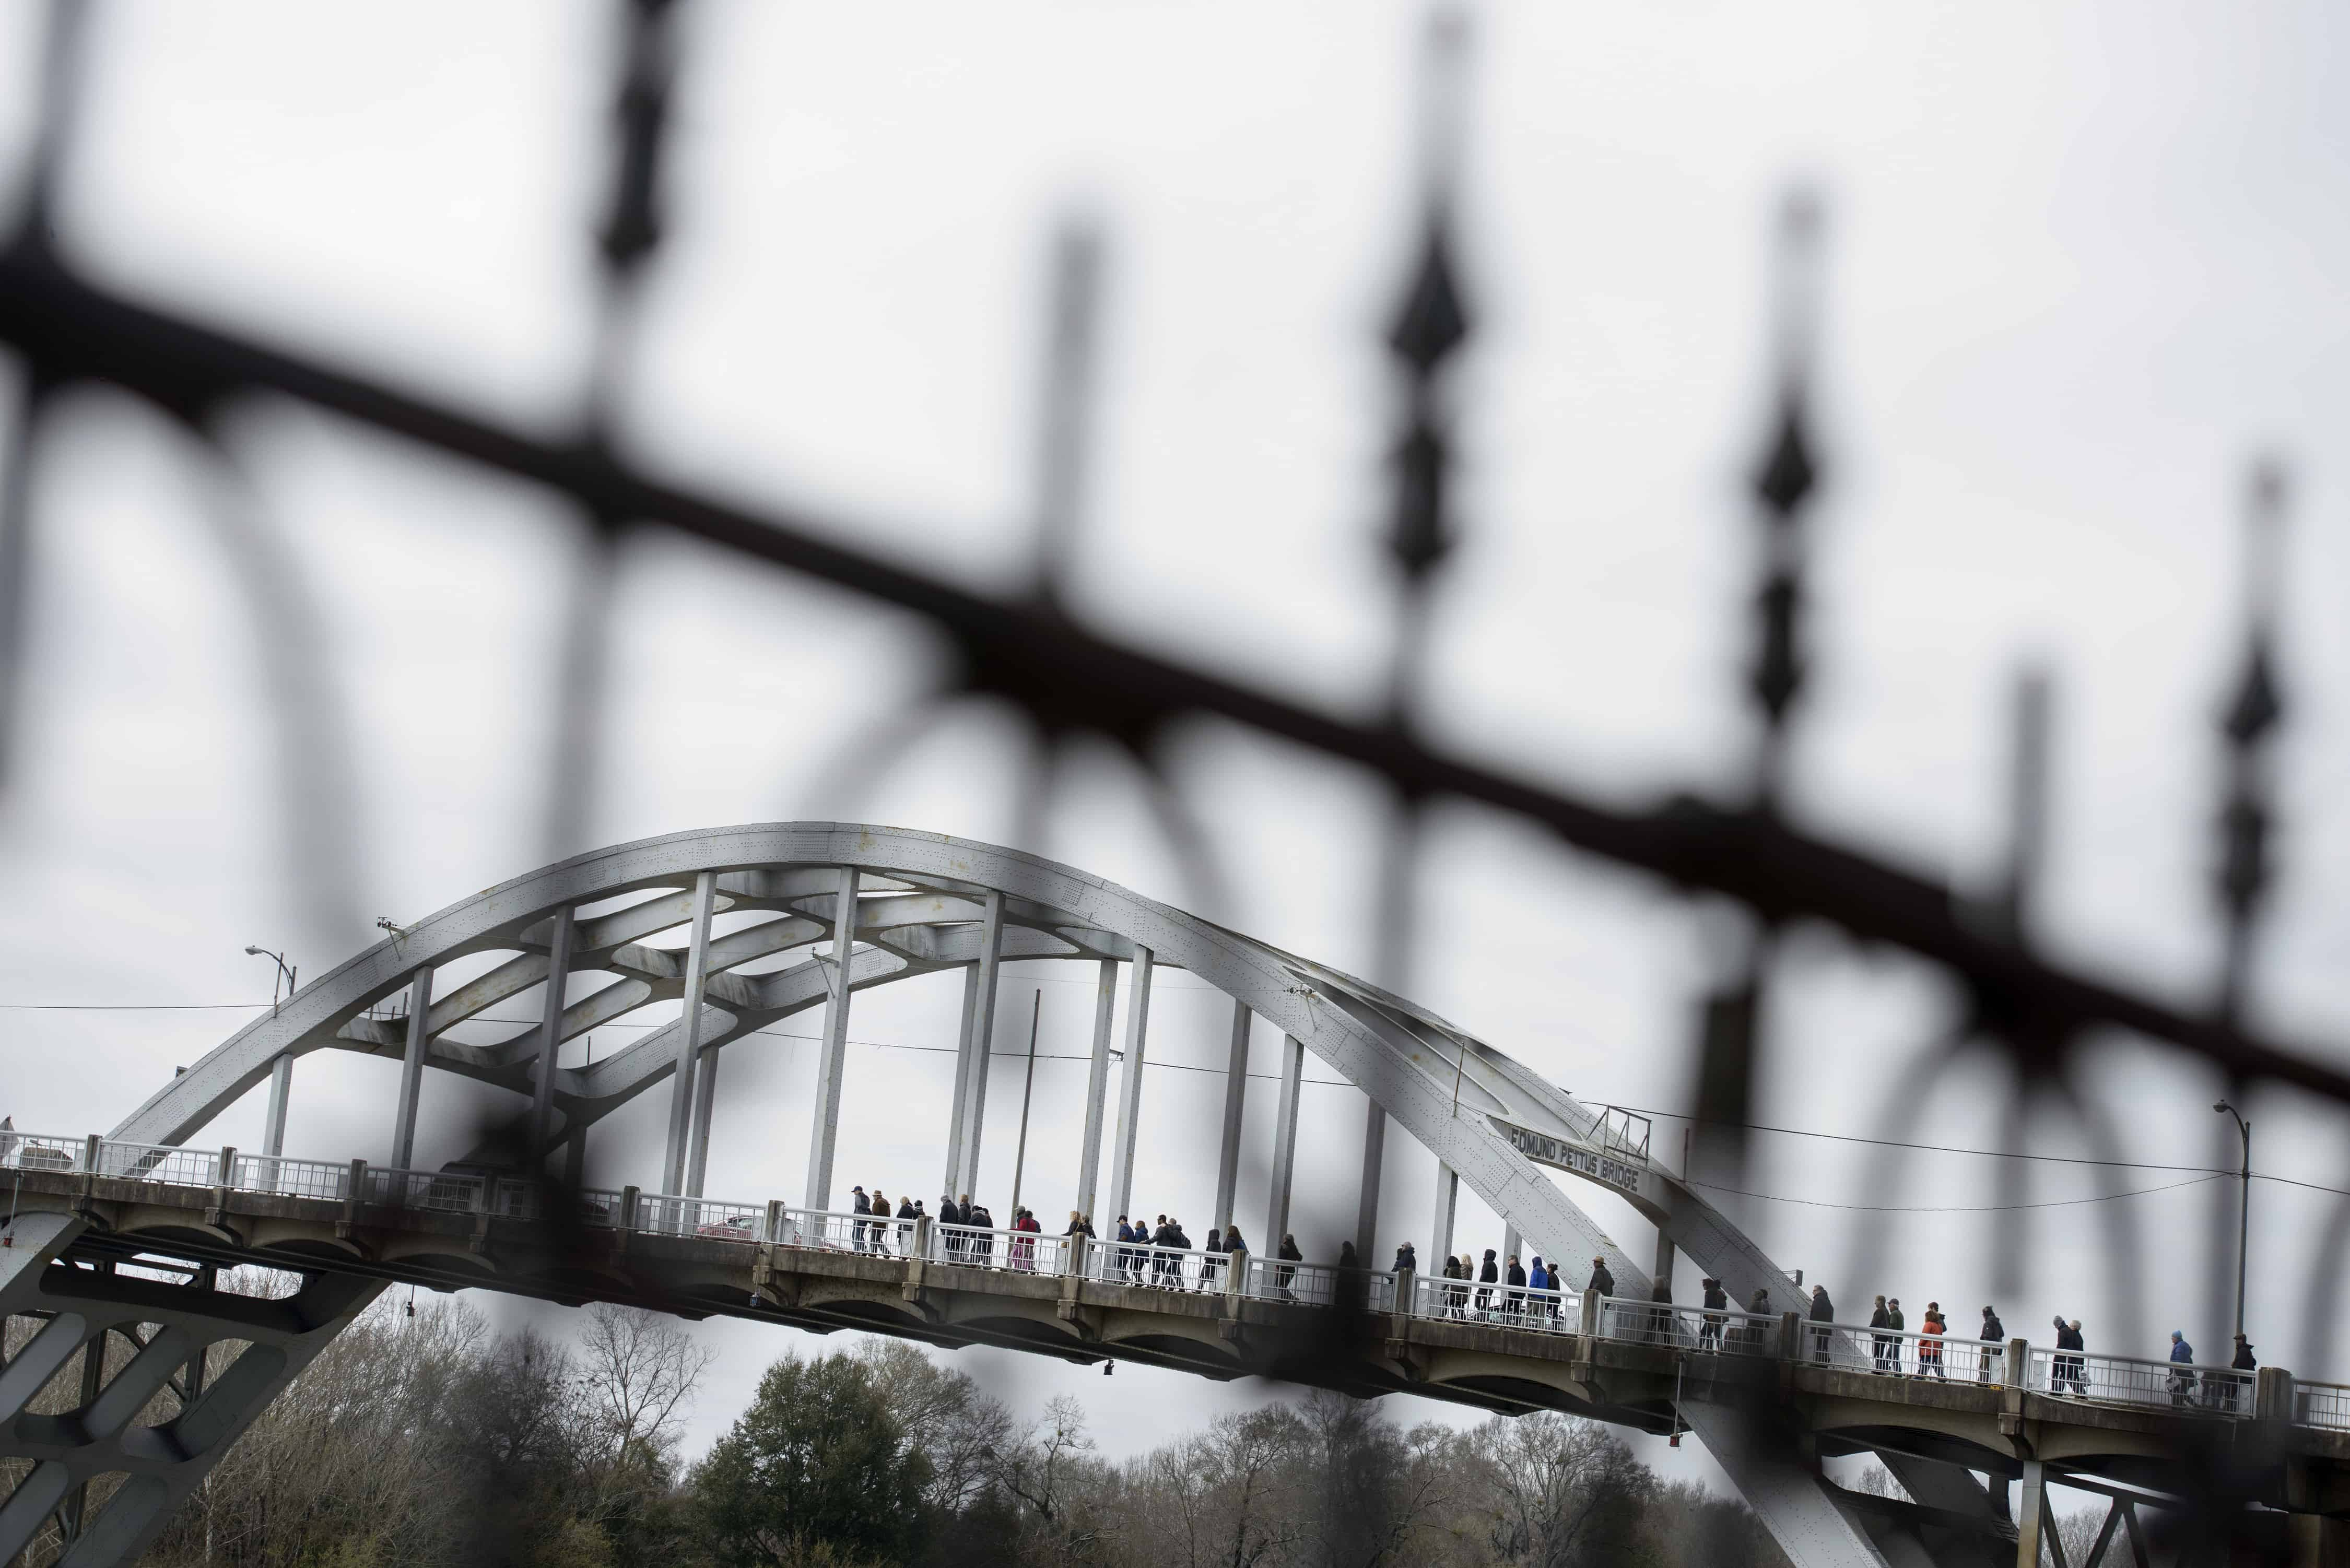 People walk towards the Edmund Pettus Bridge on March 6, 2015 in Selma, Alabama. March 7 will mark the 50th anniversary of Bloody Sunday when civil rights marchers attempting to walk to the Alabama capital of Montgomery for voters' rights clashed with police. The march from Selma to Montgomery was part of the plight to end voting discrimination against African Americans.